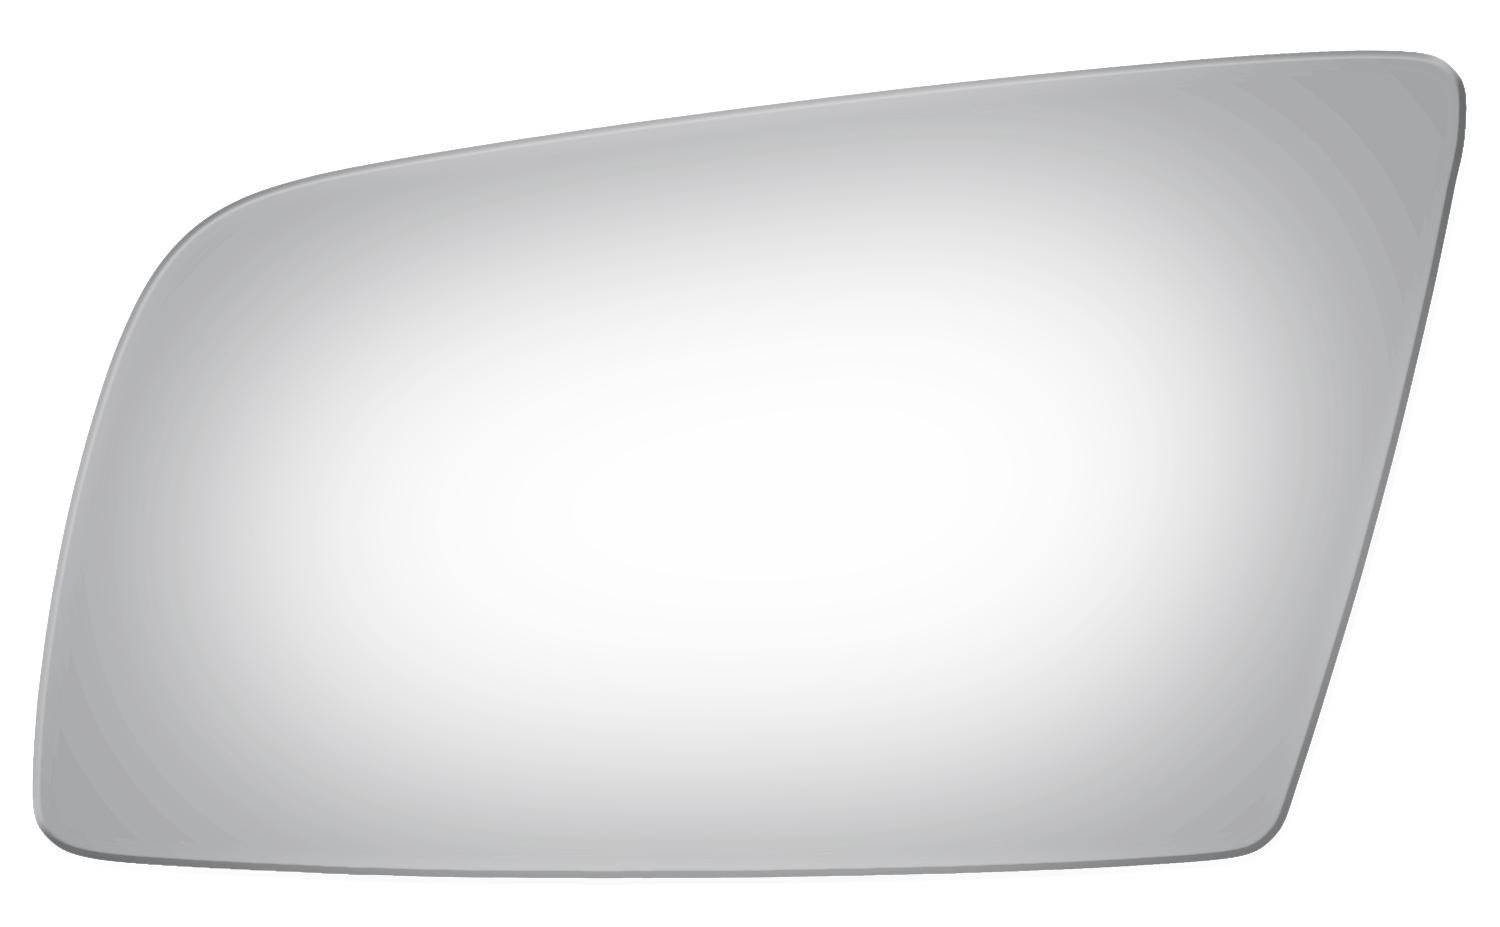 M6 2006-2007 525XI 550I 2006-2007 530I 2008-2009 528I 535I 535XI 530XI Burco 4330 Driver Side Power Replacement Mirror Glass for 2006-2009 BMW 525I M5 2008 528XI 650I